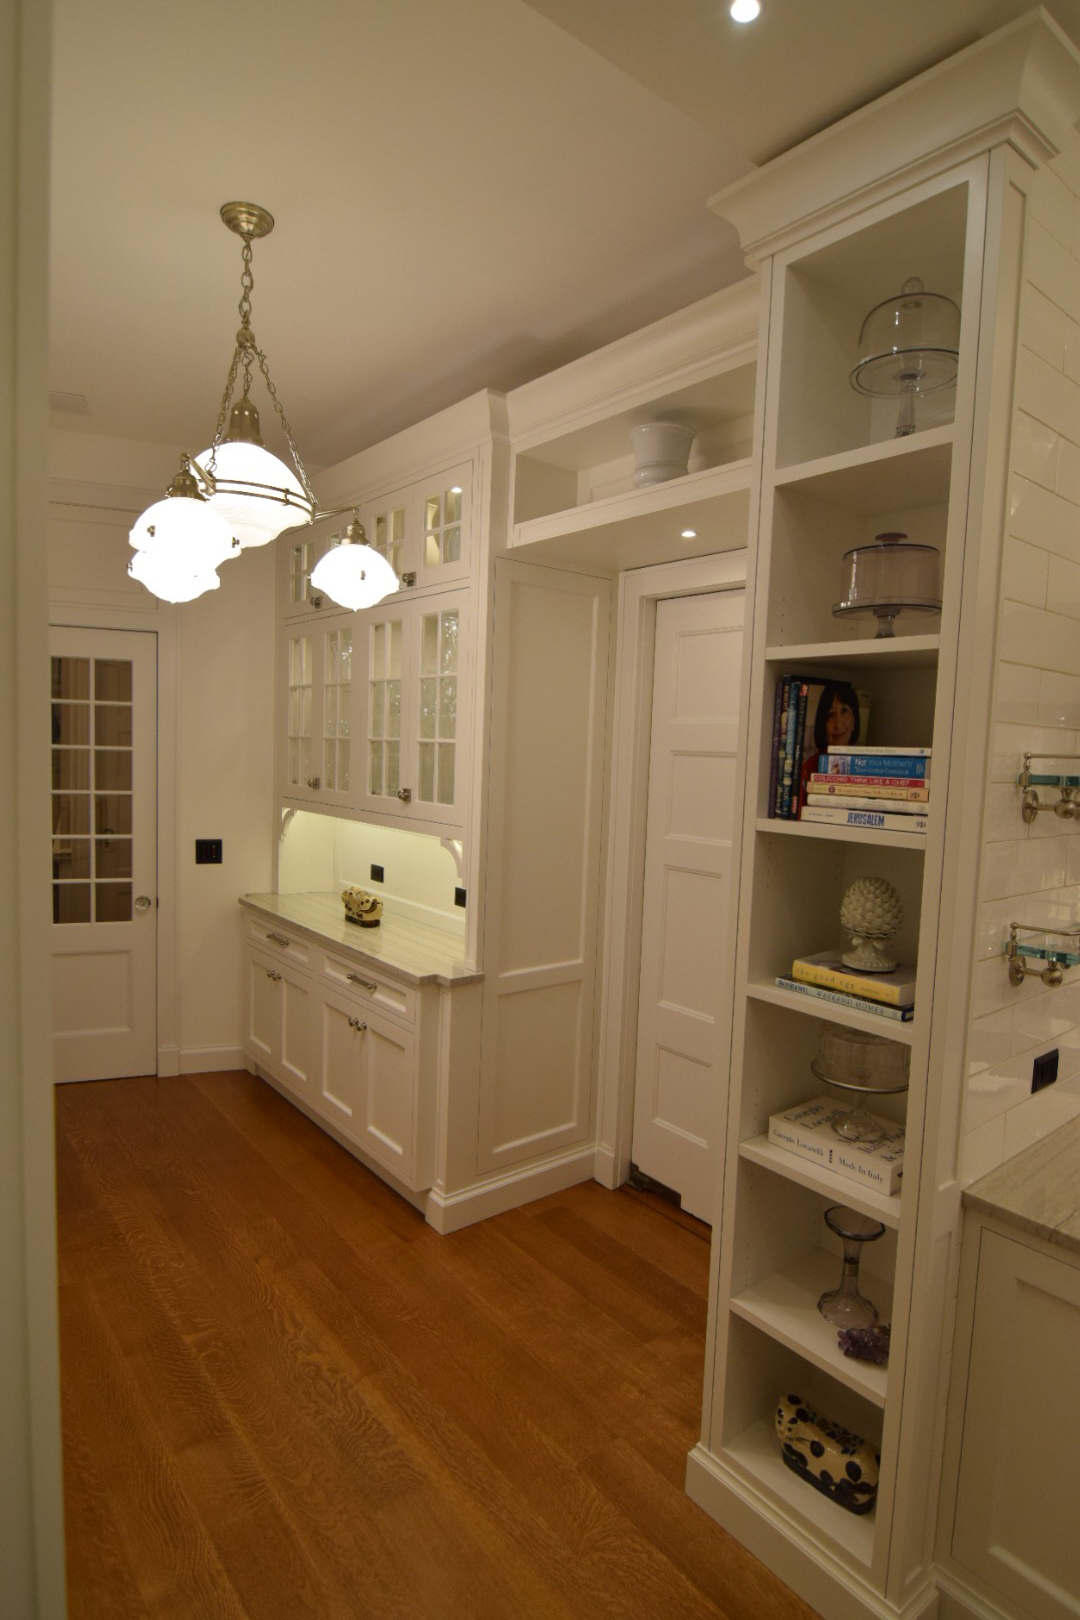 custom-traditional-solid-cherry-kitchen-with-face-frame-inset-cabinets-and-marble-countertops.jpg